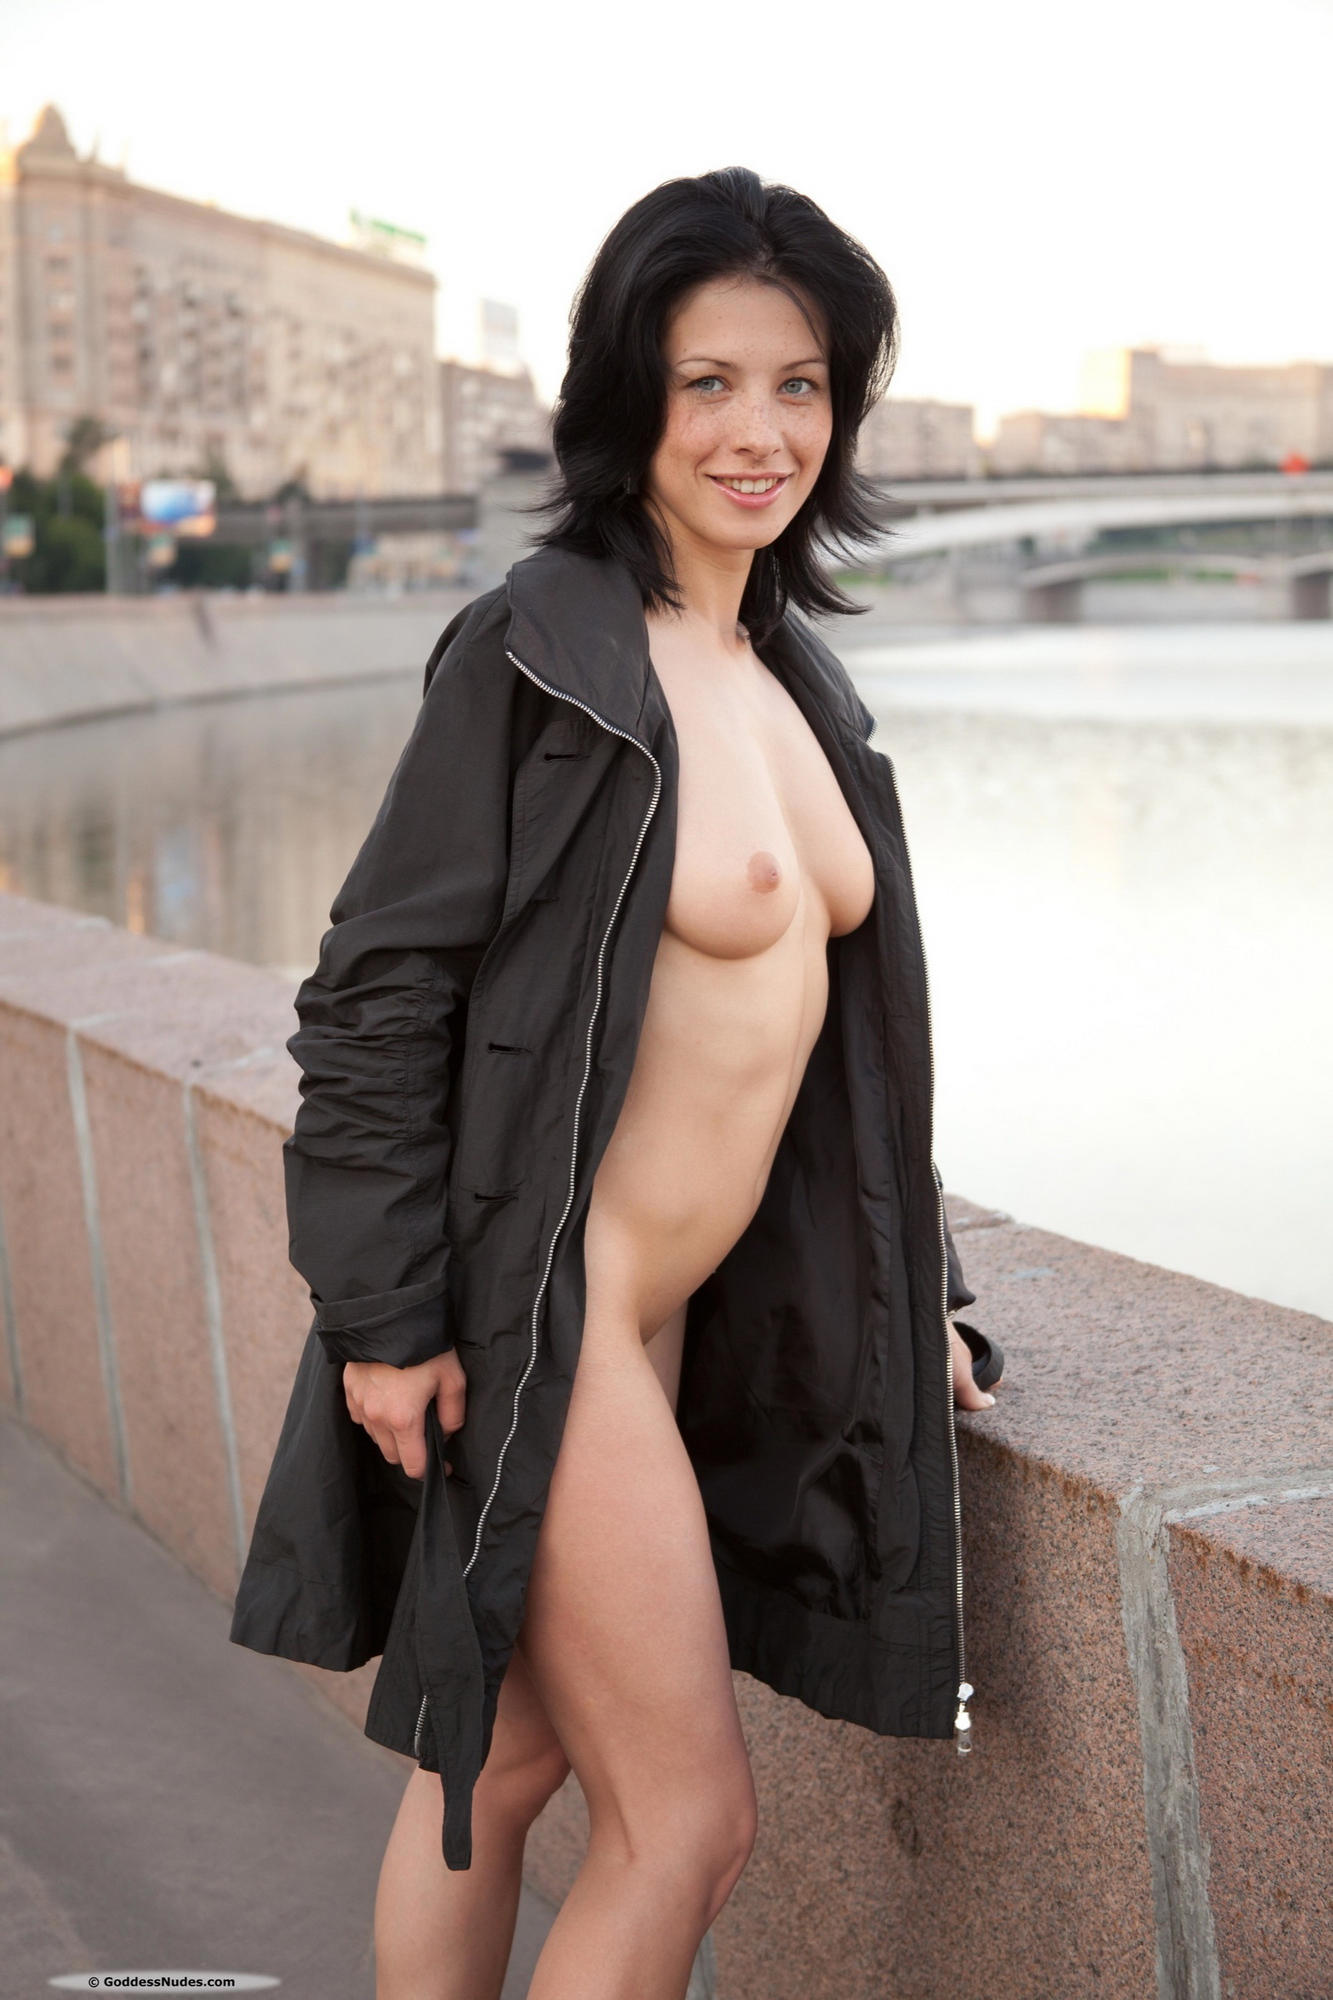 hellena-brunette-freckles-nude-moscow-goddessnudes-01